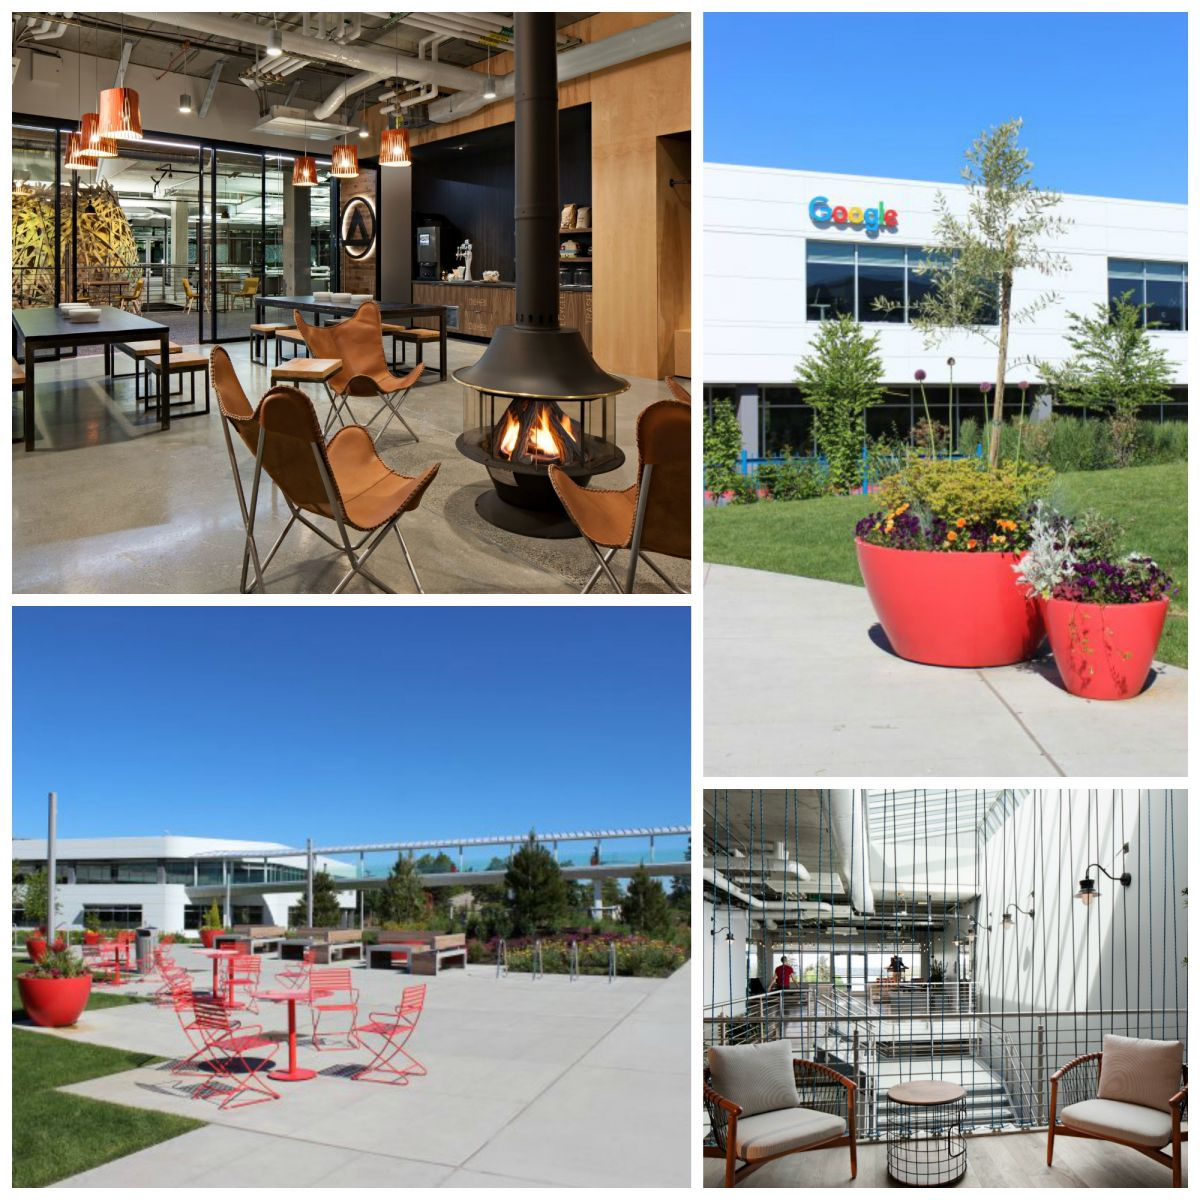 Google Kirkland Campus Continues to Succeed